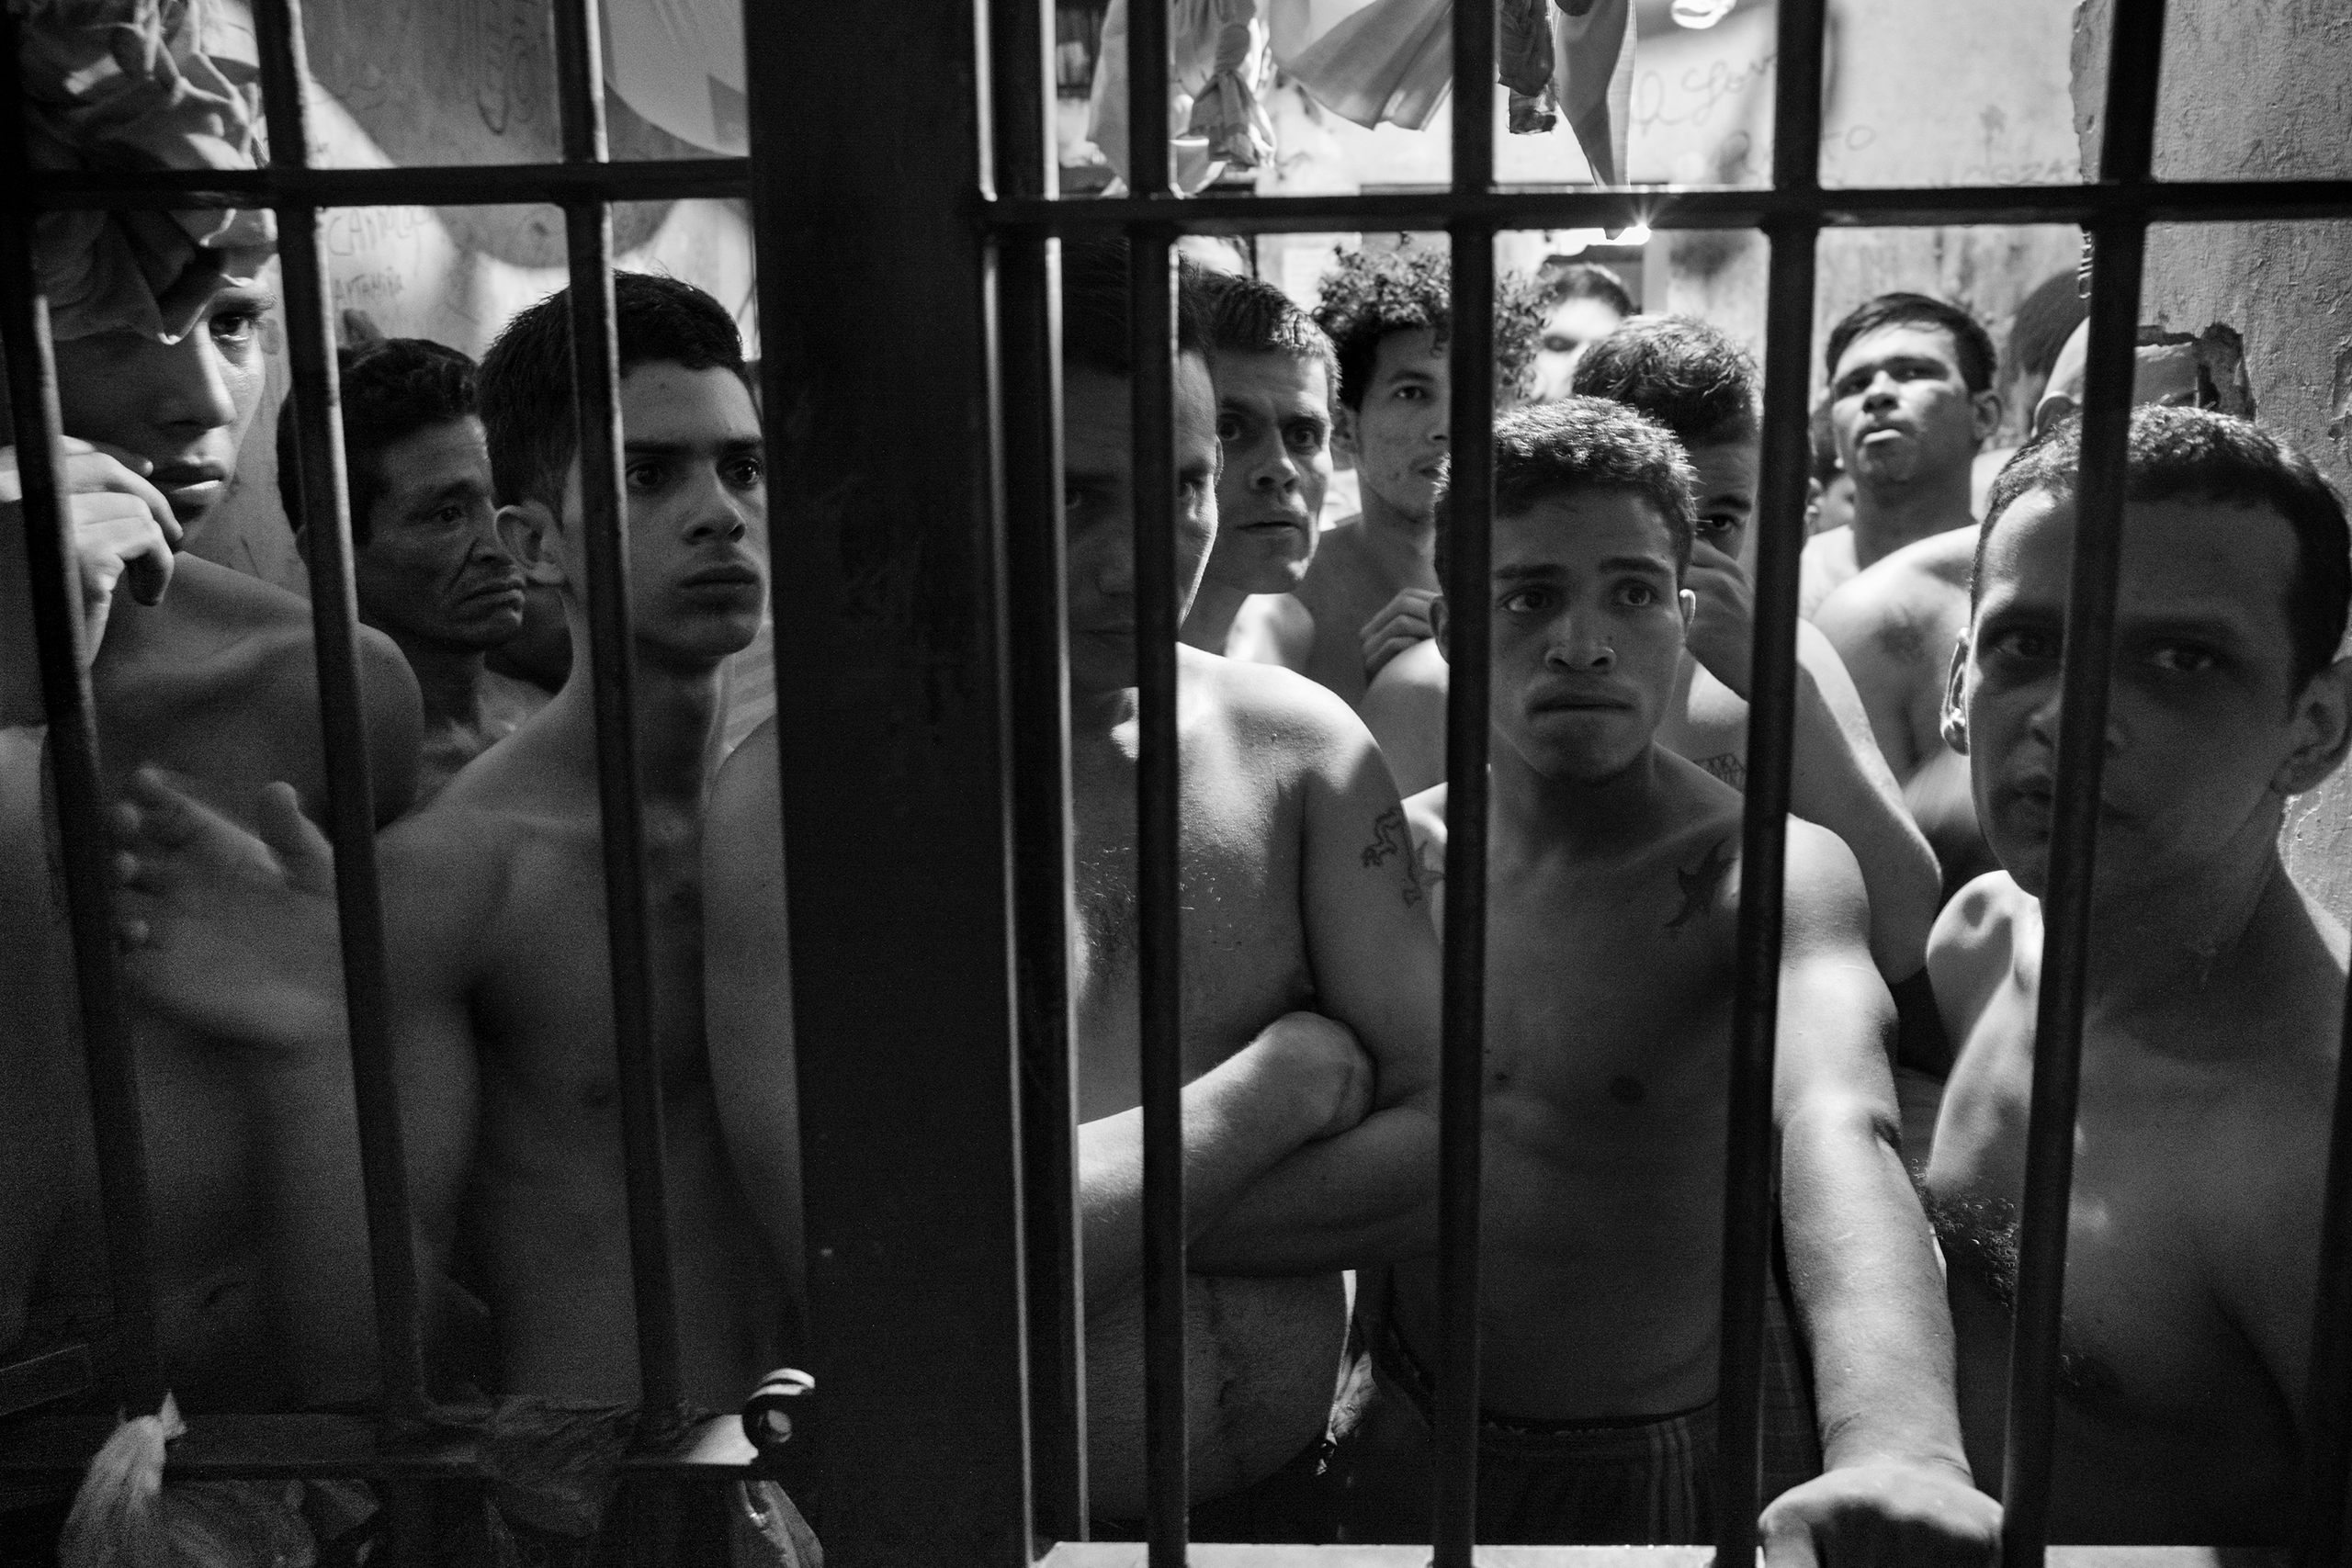 A group of prisoners locked in their cells inside the municipal police station of Chacao, east of Caracas, Venezuela, May 27, 2016.